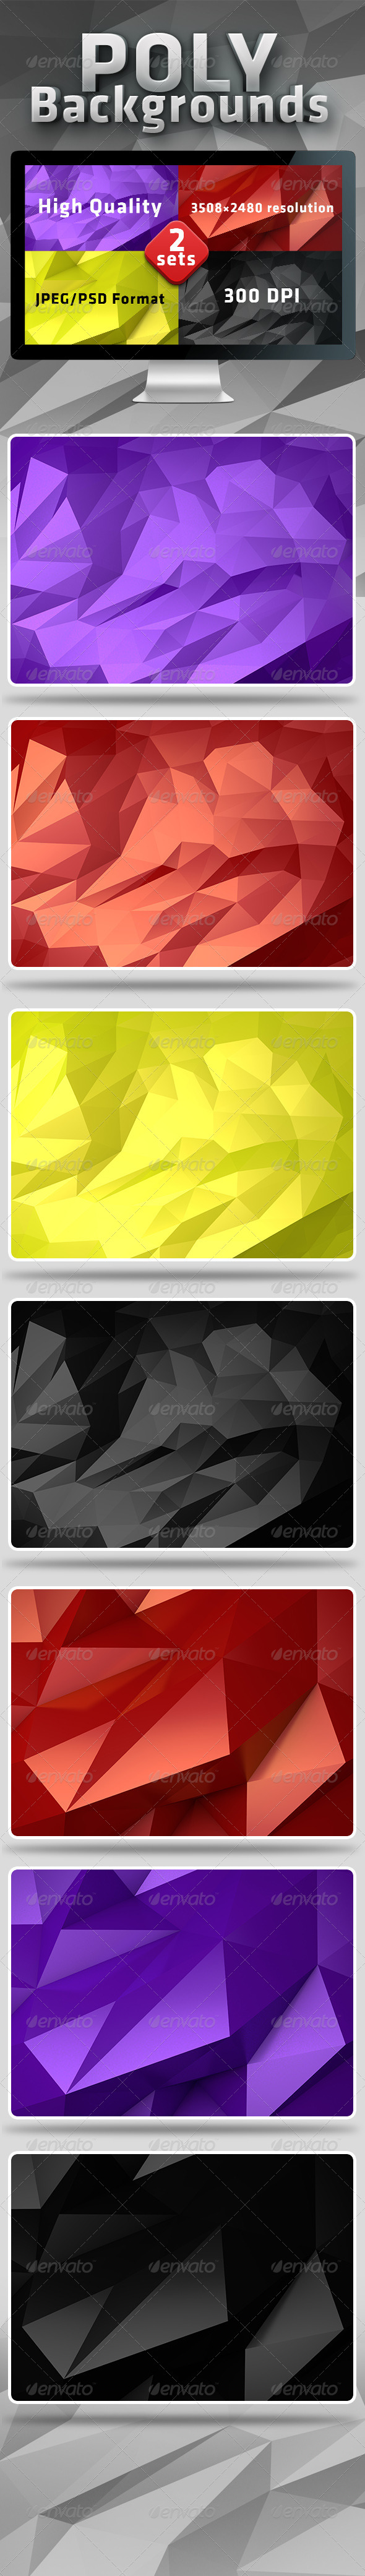 GraphicRiver Poly Backgrounds 5530094